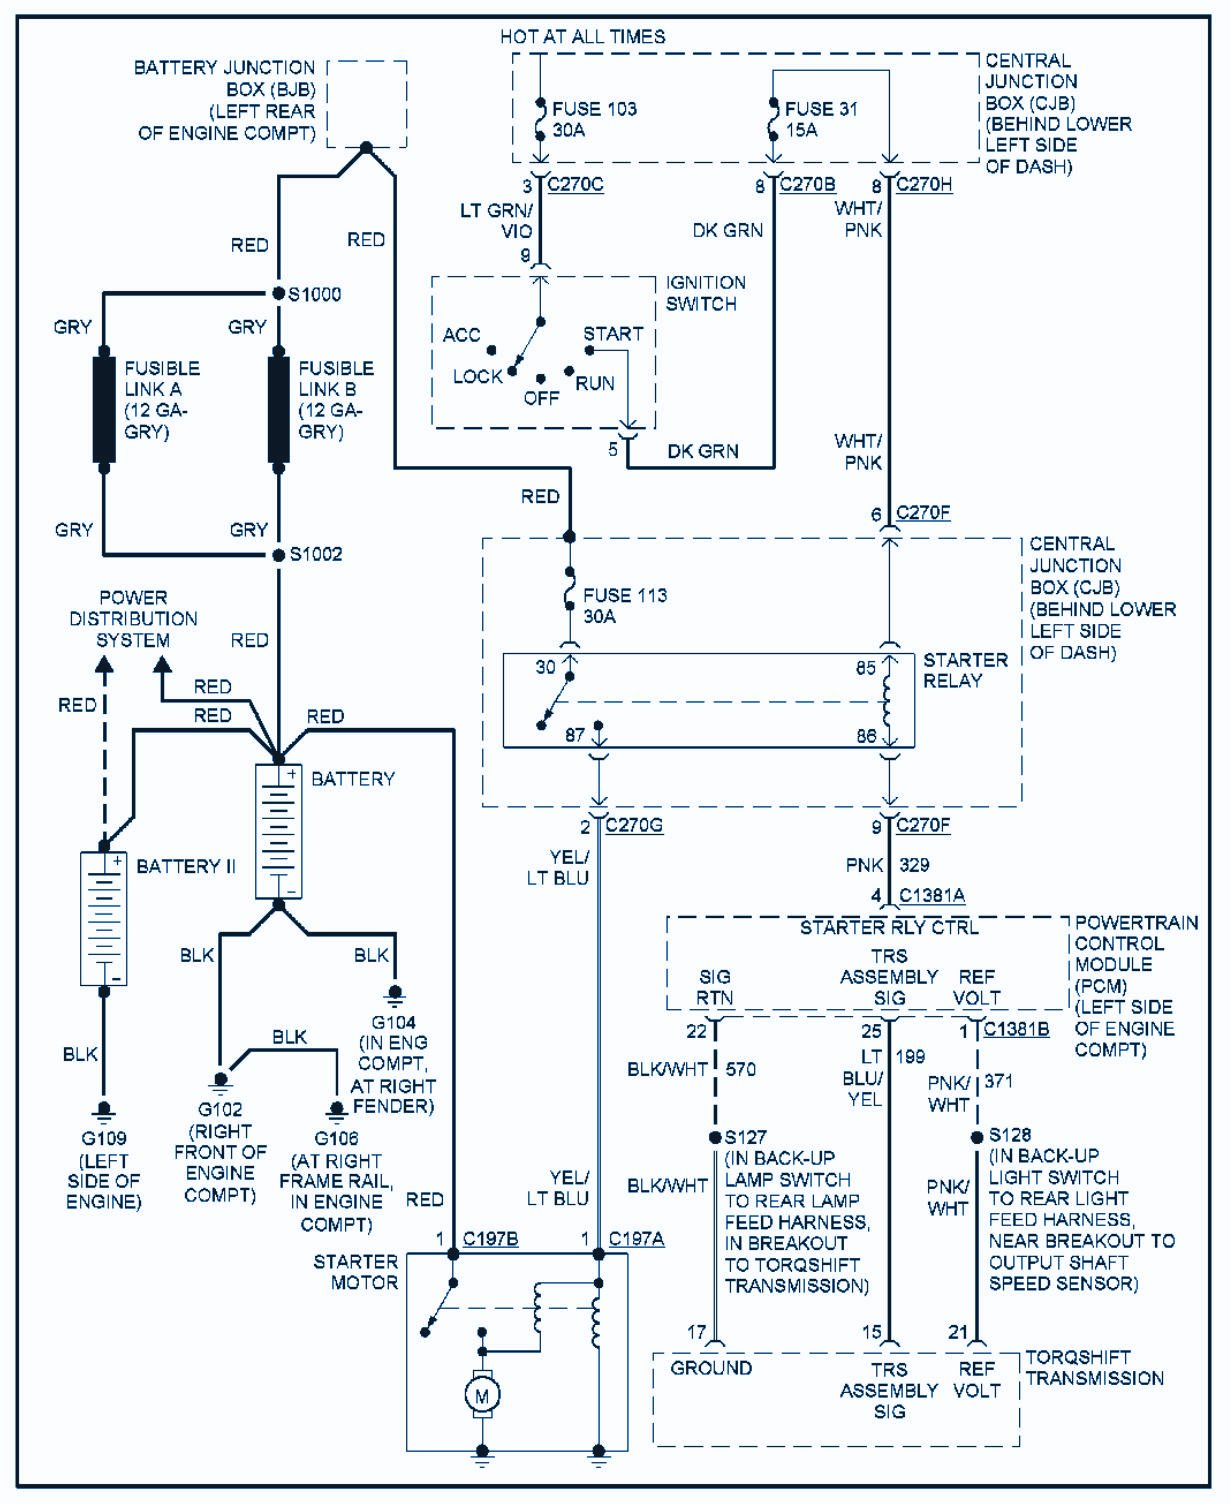 DIAGRAM] 1996 Ford Wiring Diagram FULL Version HD Quality Wiring Diagram -  MAMI-DIAGRAM.RADD.FRDiagram Database - Radd